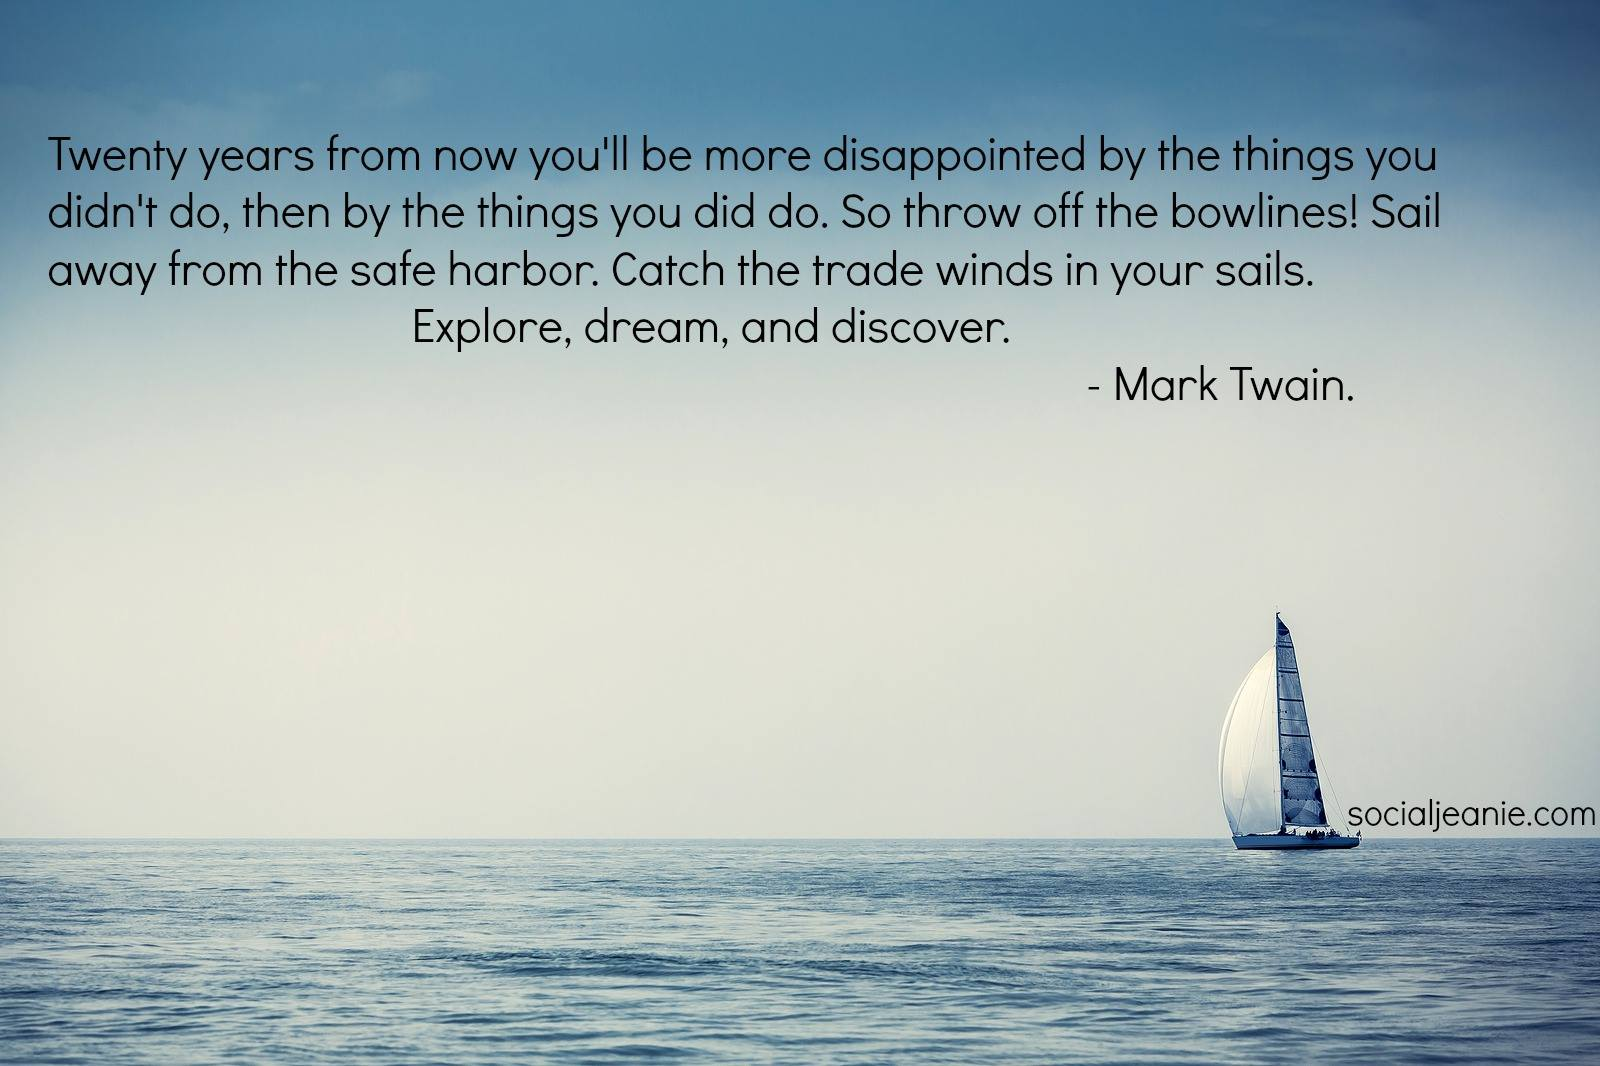 Cool Sailing Quotes Quotesgram: Sail Mark Twain Quotes. QuotesGram